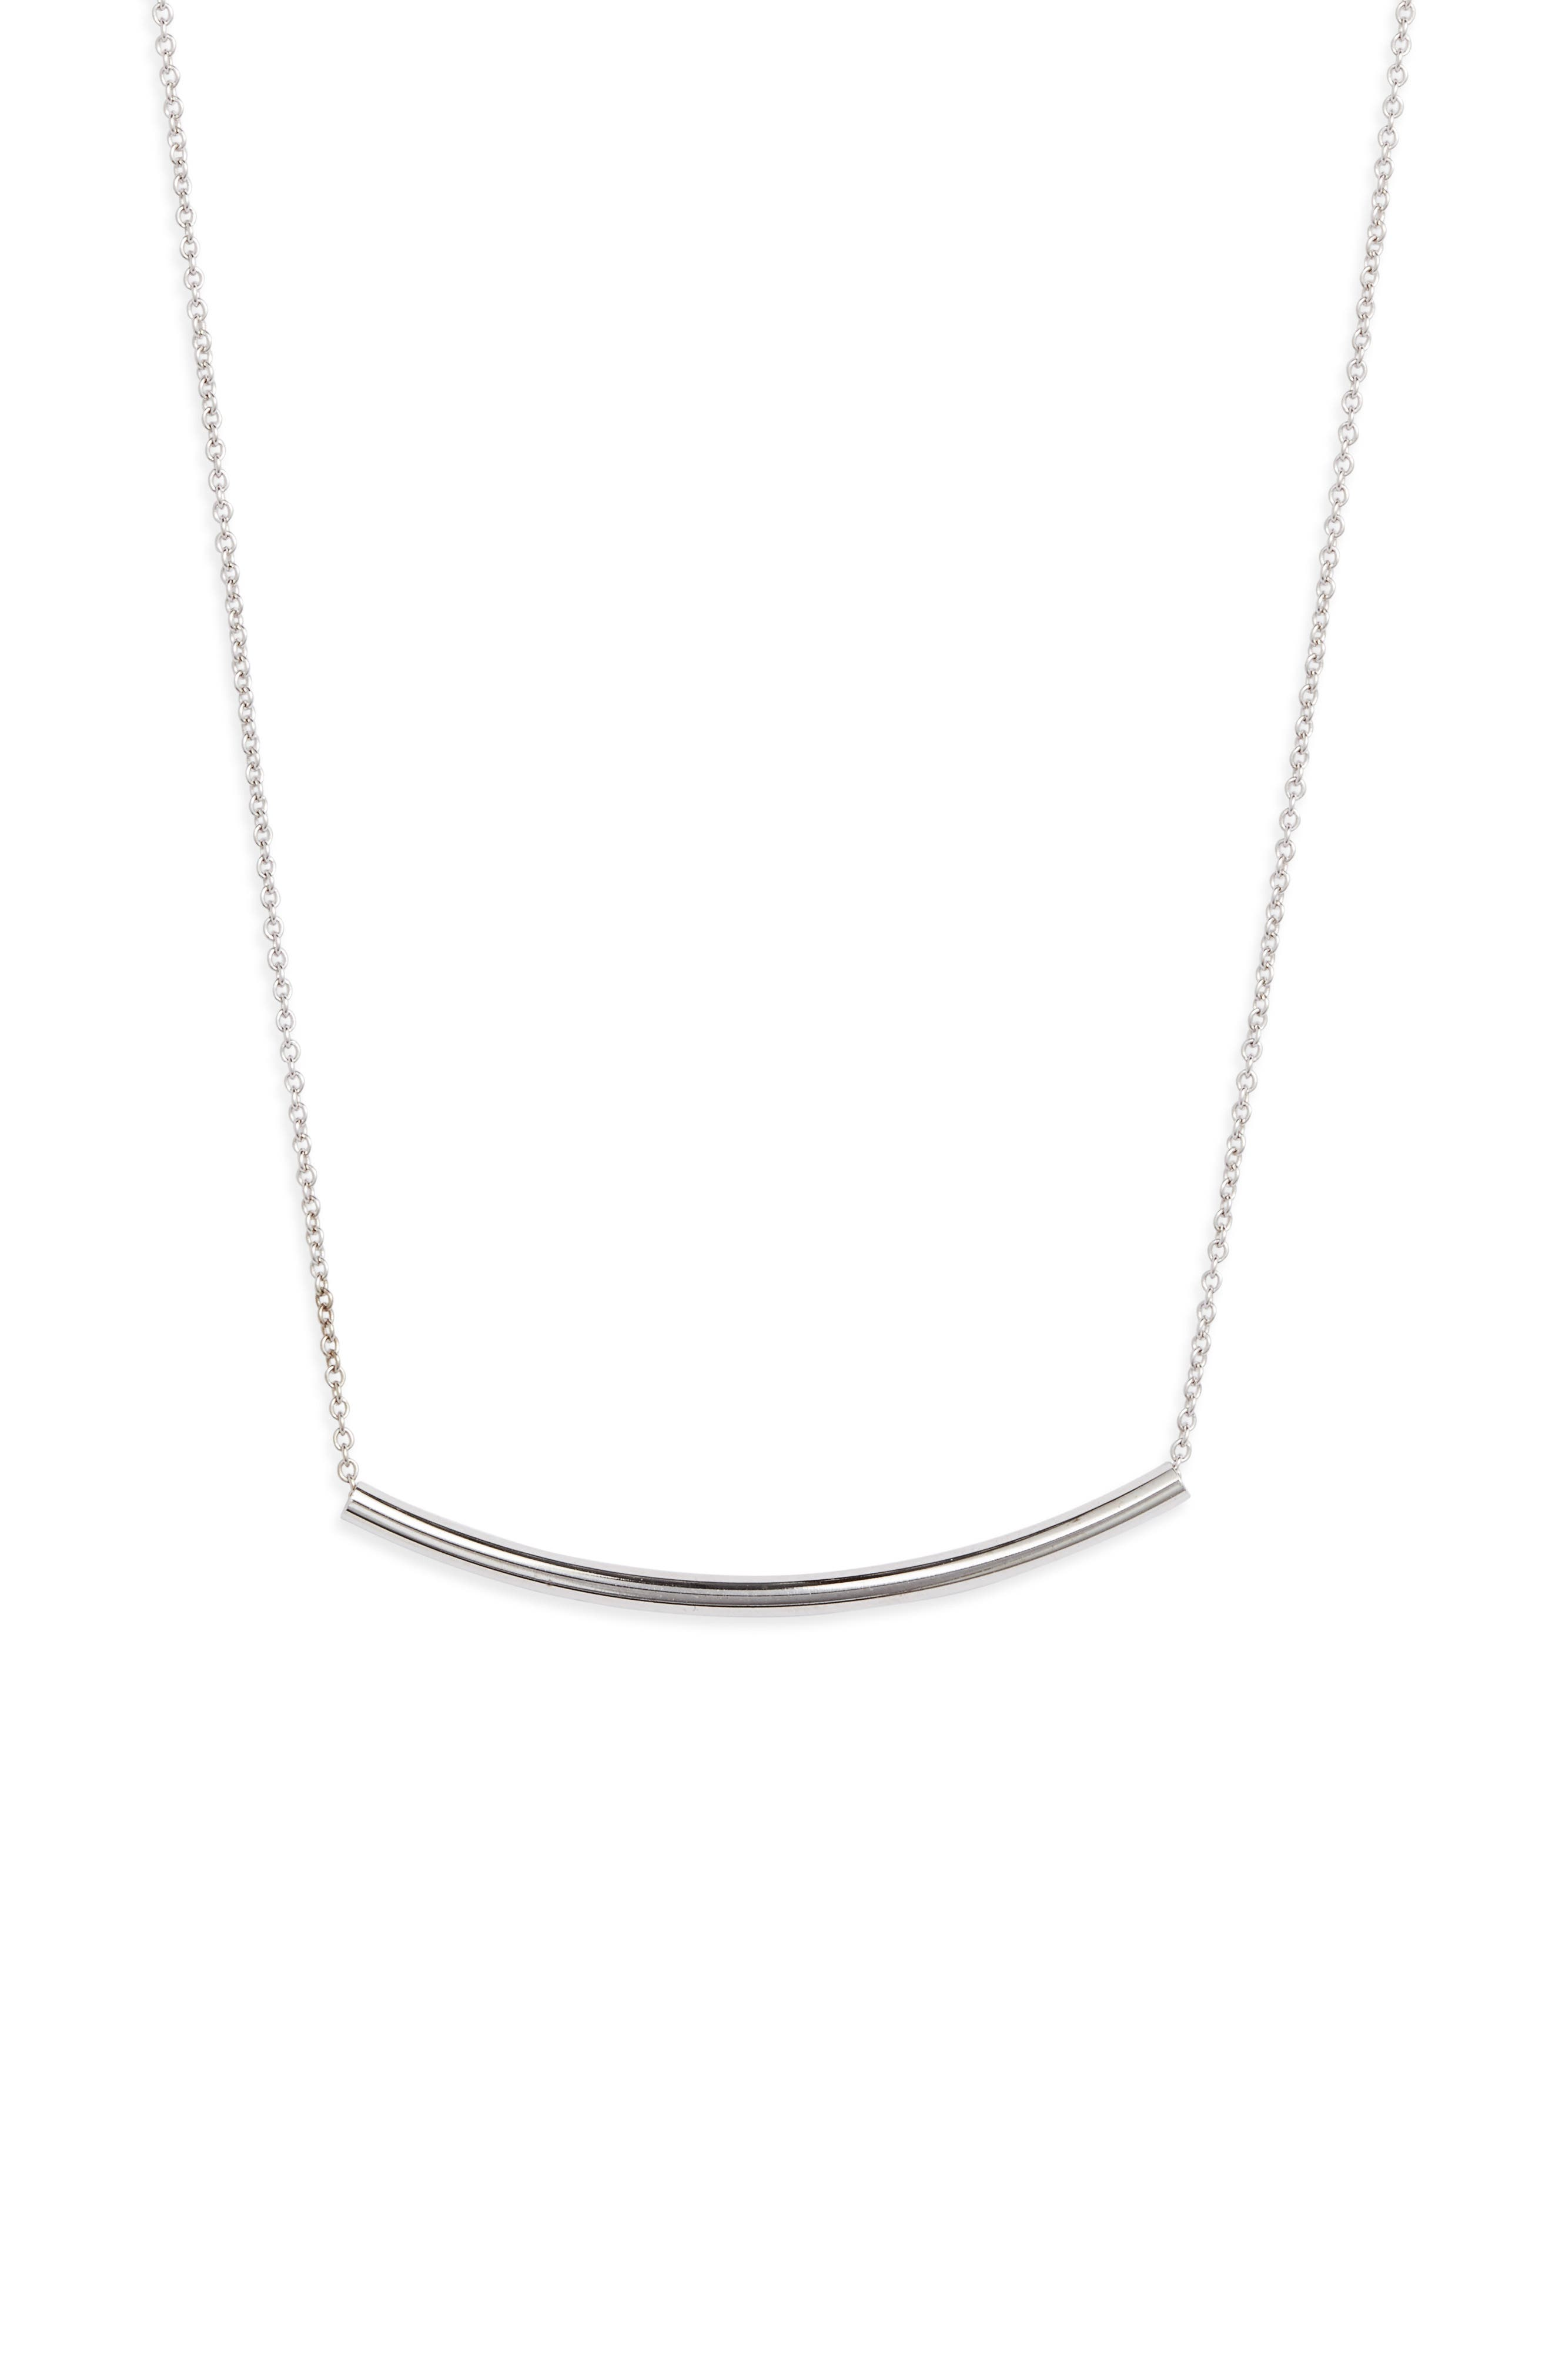 This simple and gleaming pendant makes an elegant piece to wear alone or an endlessly versatile one to layer with other necklaces. Style Name: Sterling Forever Curved Bar Pendant Necklace. Style Number: 5931885. Available in stores.